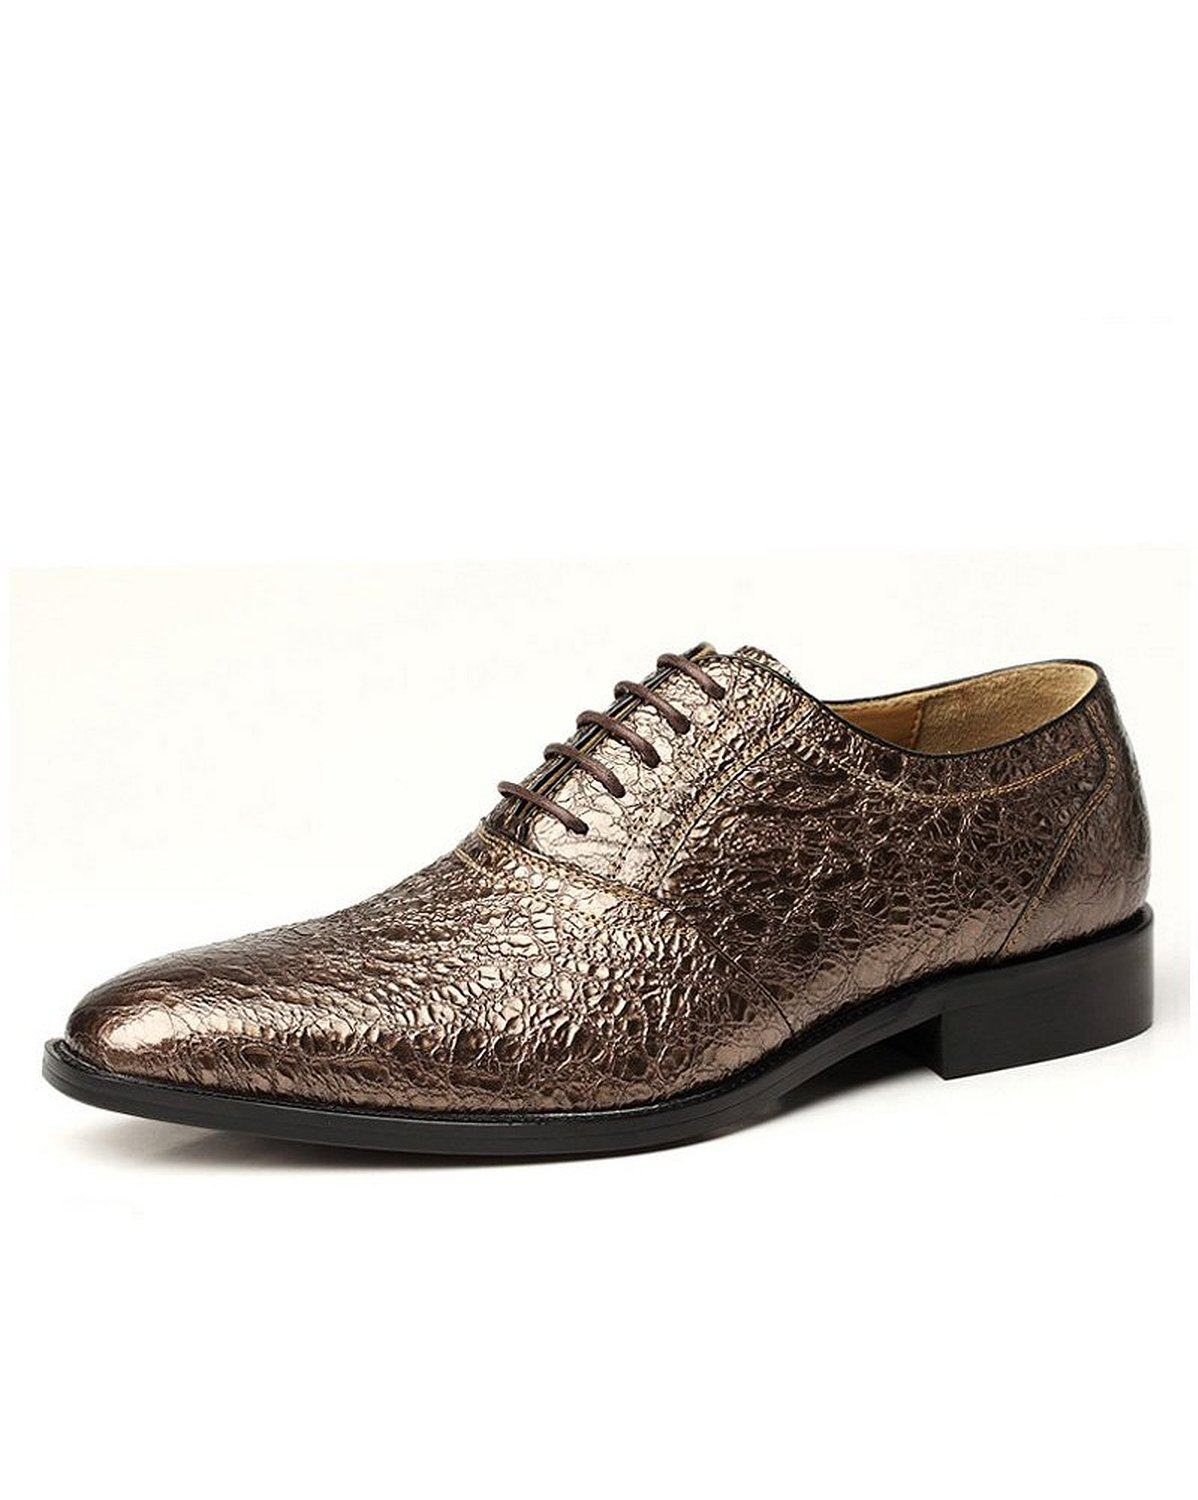 Mens Glitter Leather Oxfords Shoes